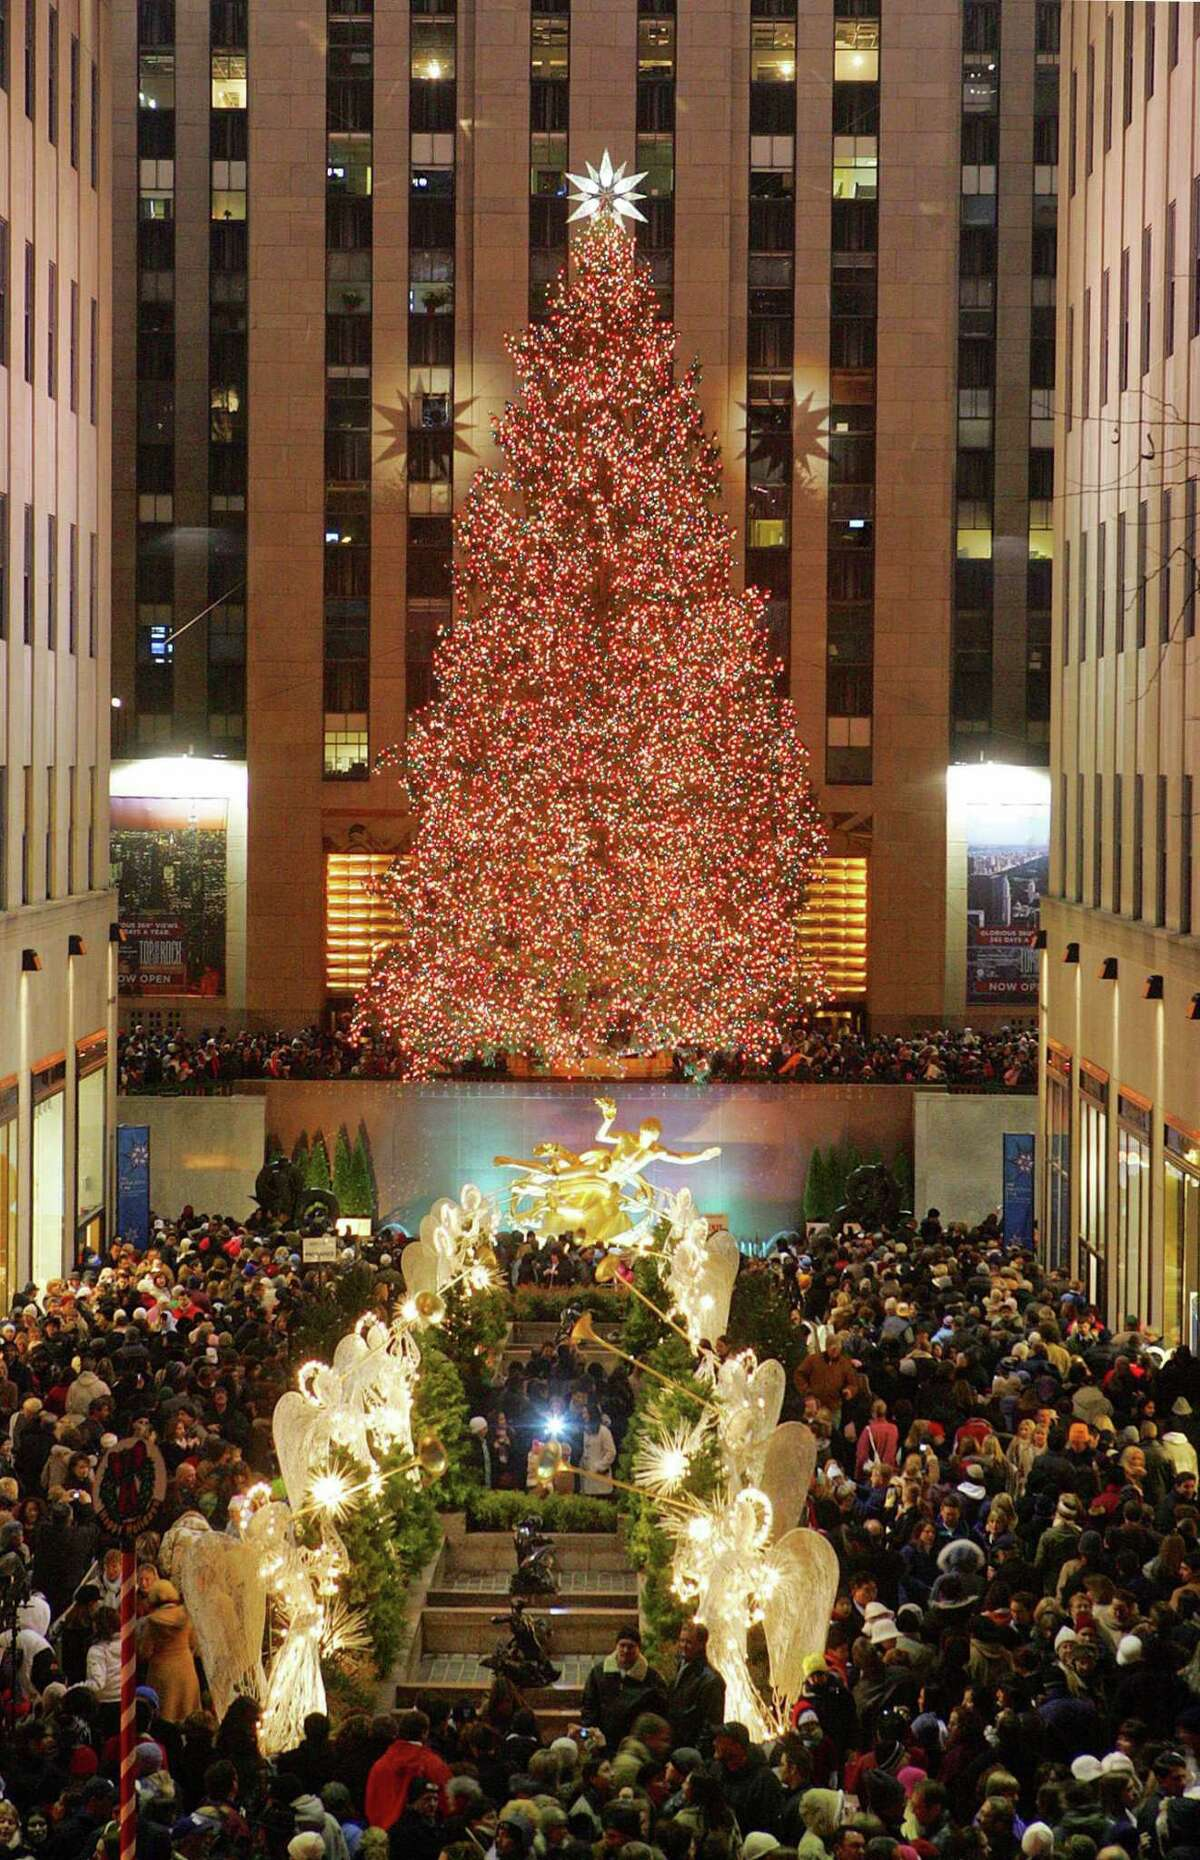 The Rockefeller Plaza is crowded with people looking at the Christmas tree in New York December 3, 2005. The 74 feet (22.55 m) tall Norway spruce from Wayne, N.J. weighs nine tons (8,165 kg), is lit with 30,000 lights and is topped with a Swarovski star. REUTERS/Dima Gavrysh